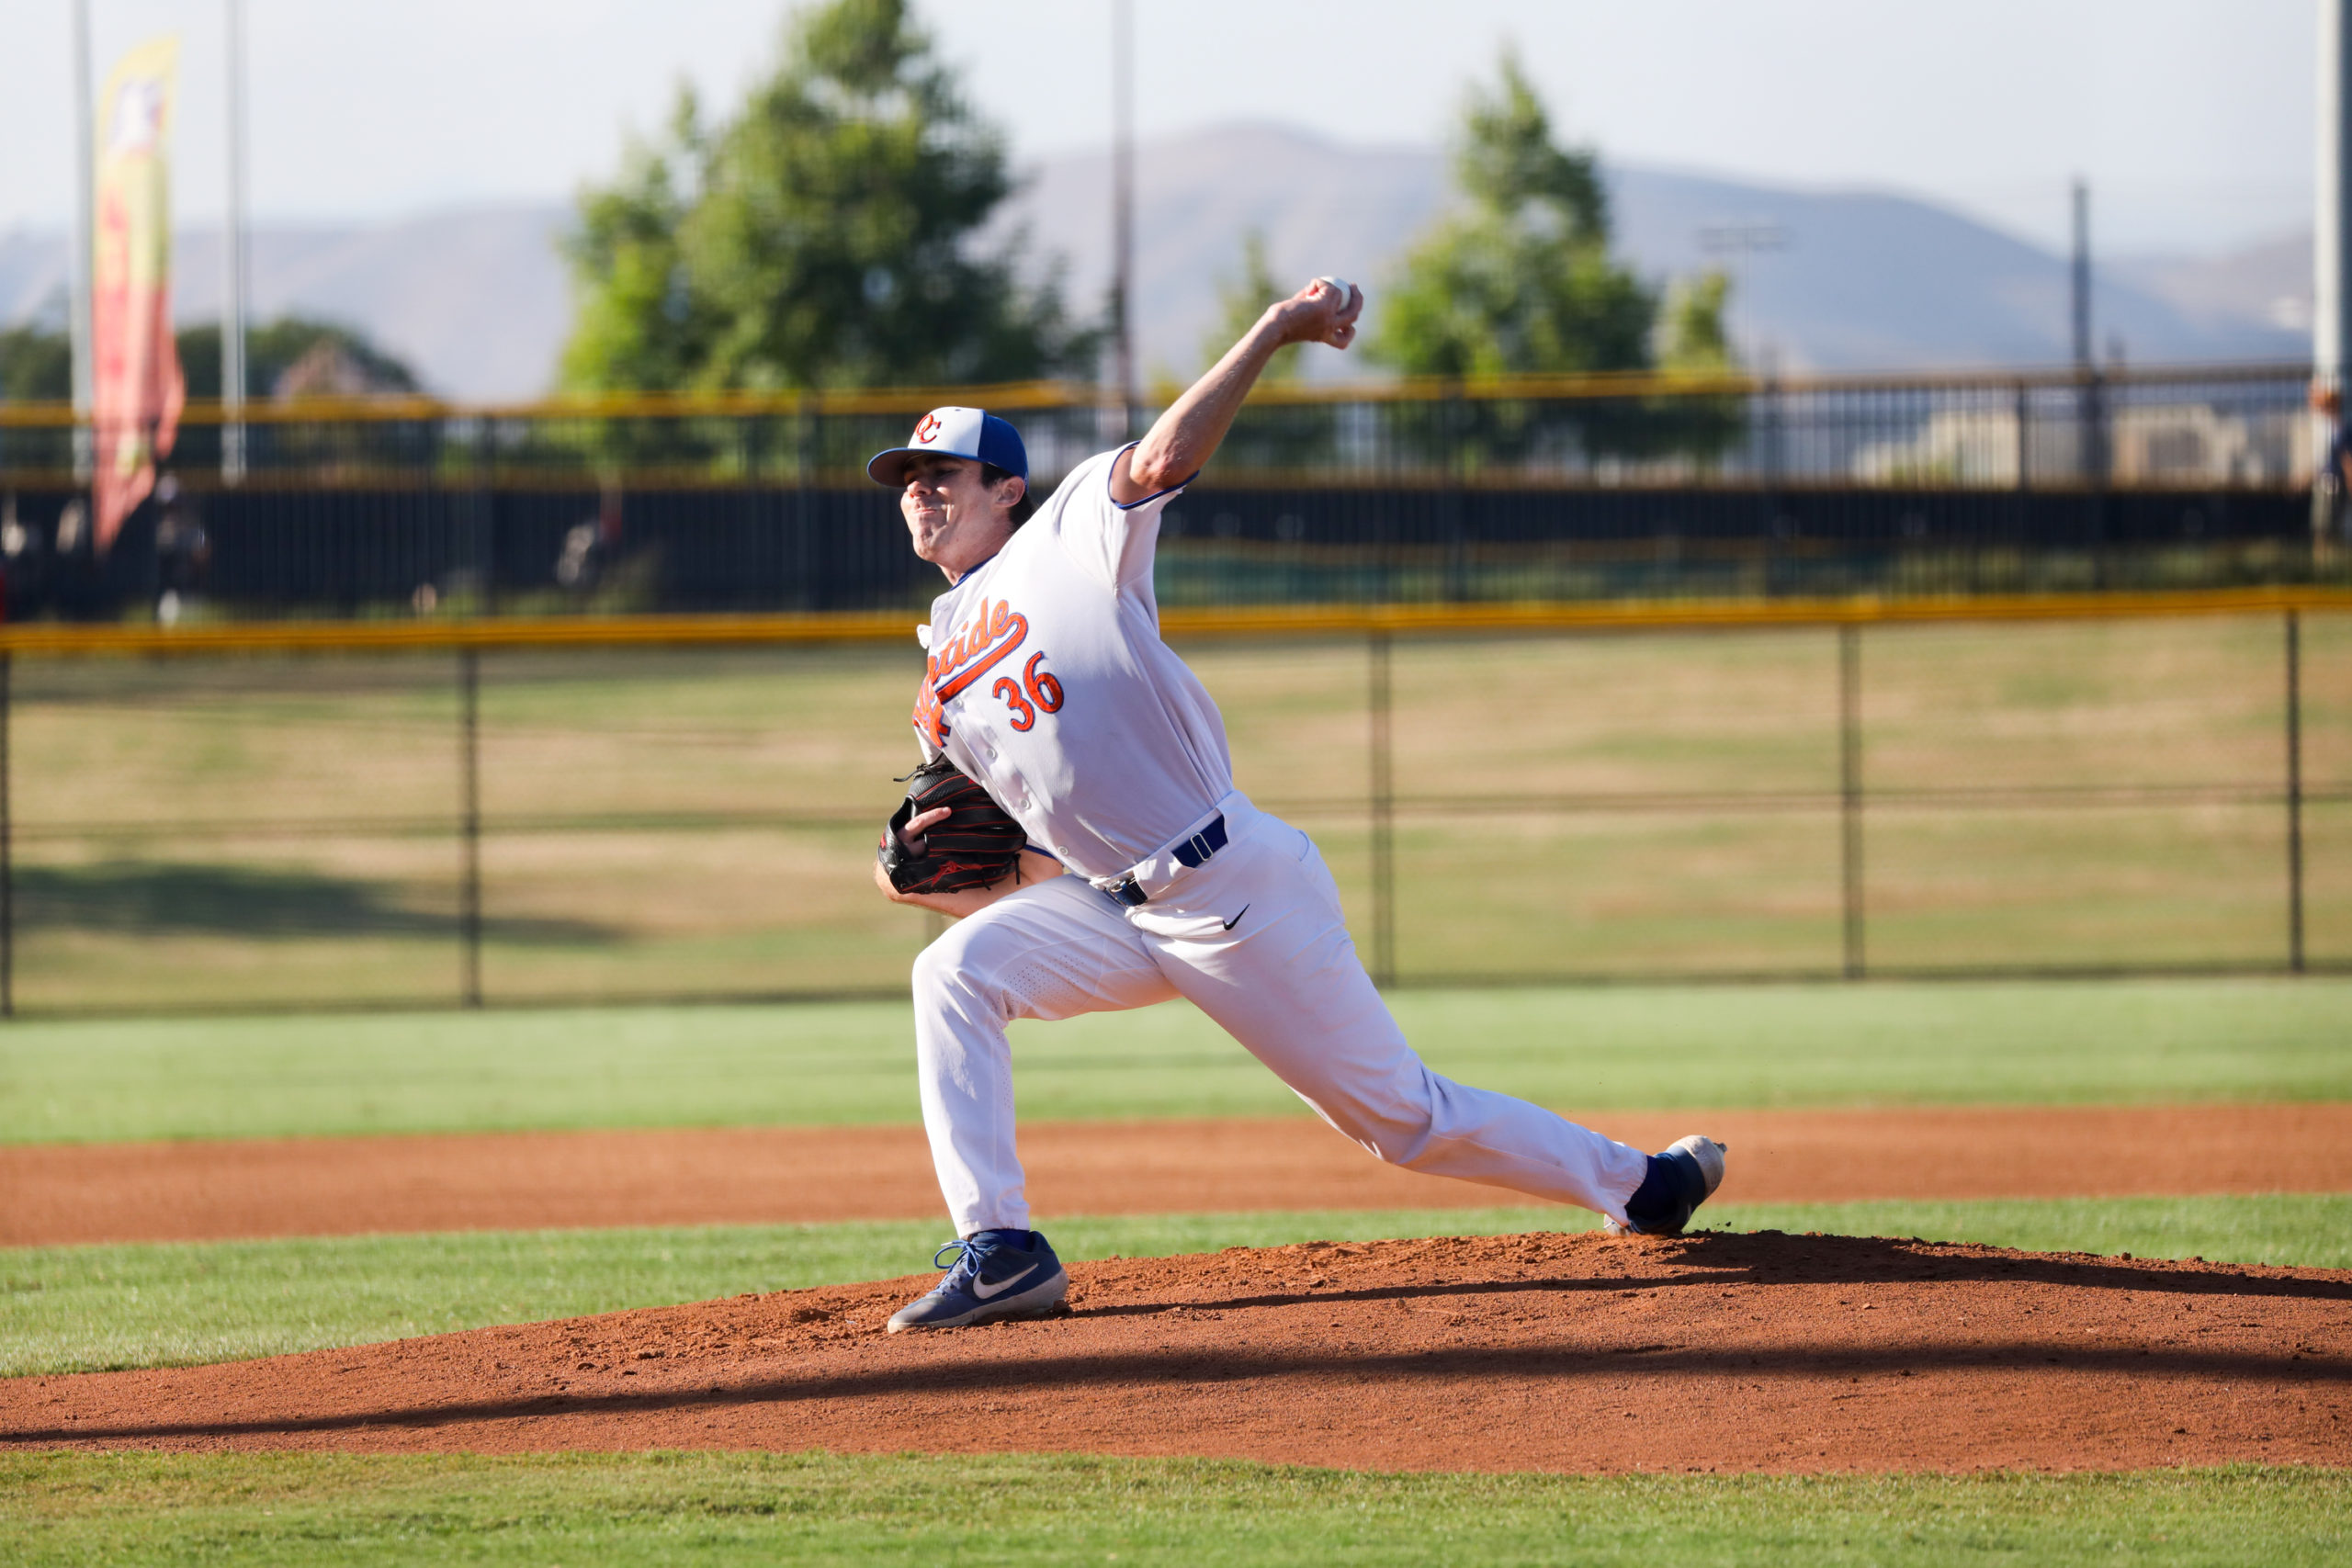 Edwards' Stellar Outing Not Enough as Foresters Stun Riptide 3-2